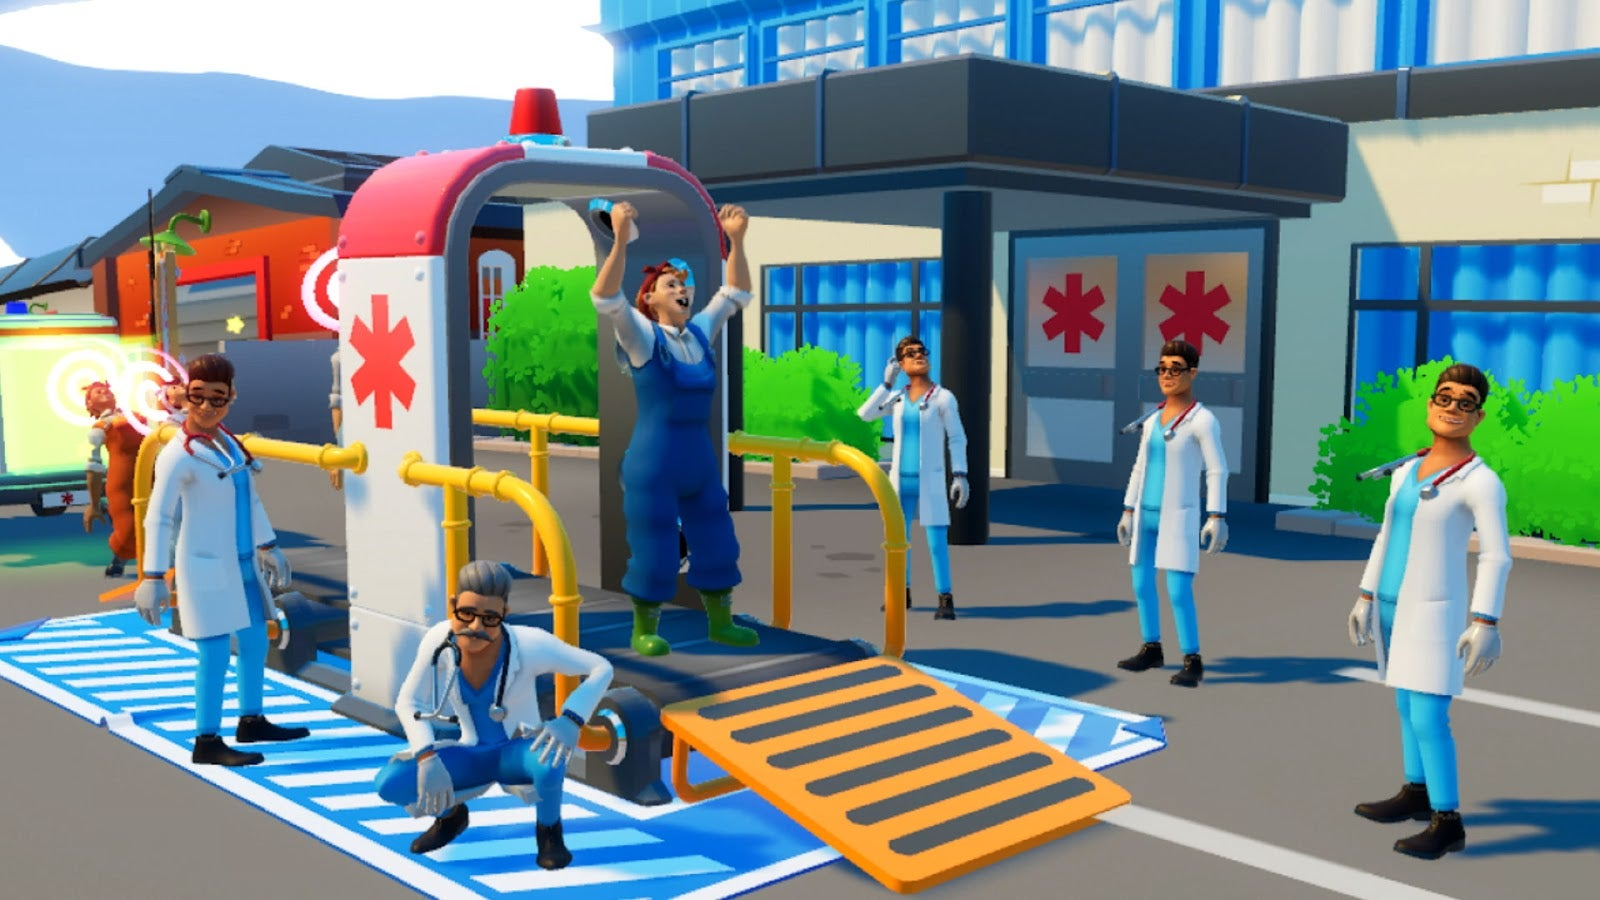 Nintendo Just Released A Wacky Ambulance Game In Europe And Japan